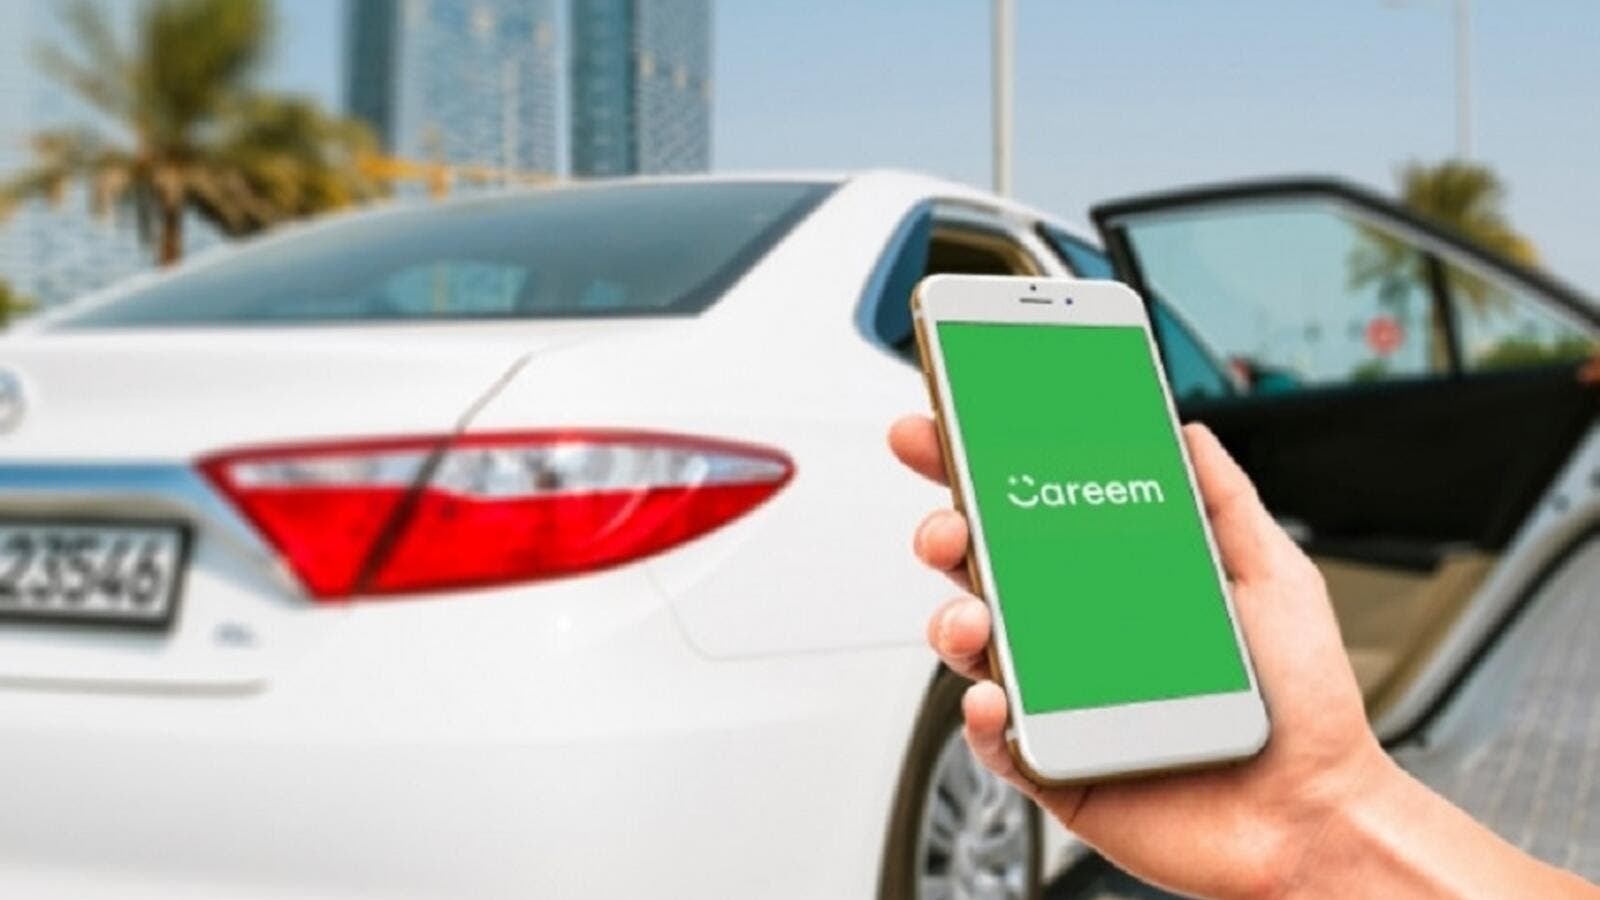 Two-hundred and seventy five workers at Careem offices in the UAE, Germany and Pakistan will become millionaires after the company's acquisition by fellow ride-sharing app Uber. (File/Photo)